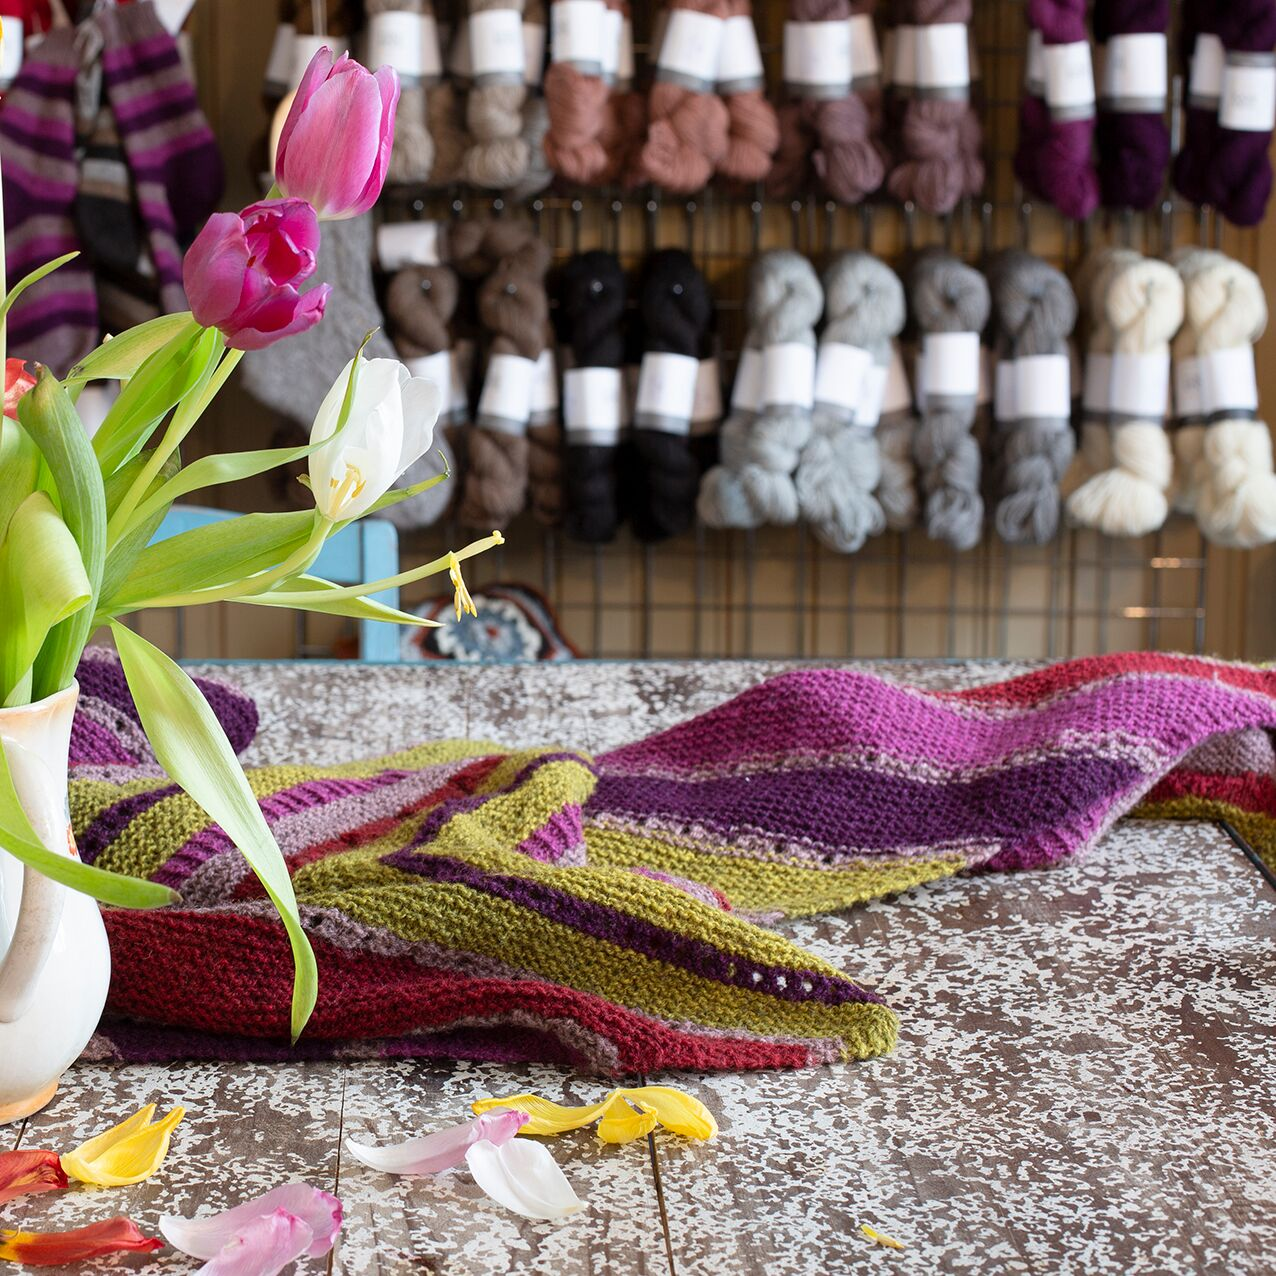 With glowing colours and lovely neutrals, Tukuwool is a natural for colourwork, from stripes to intricate stranded patterns.